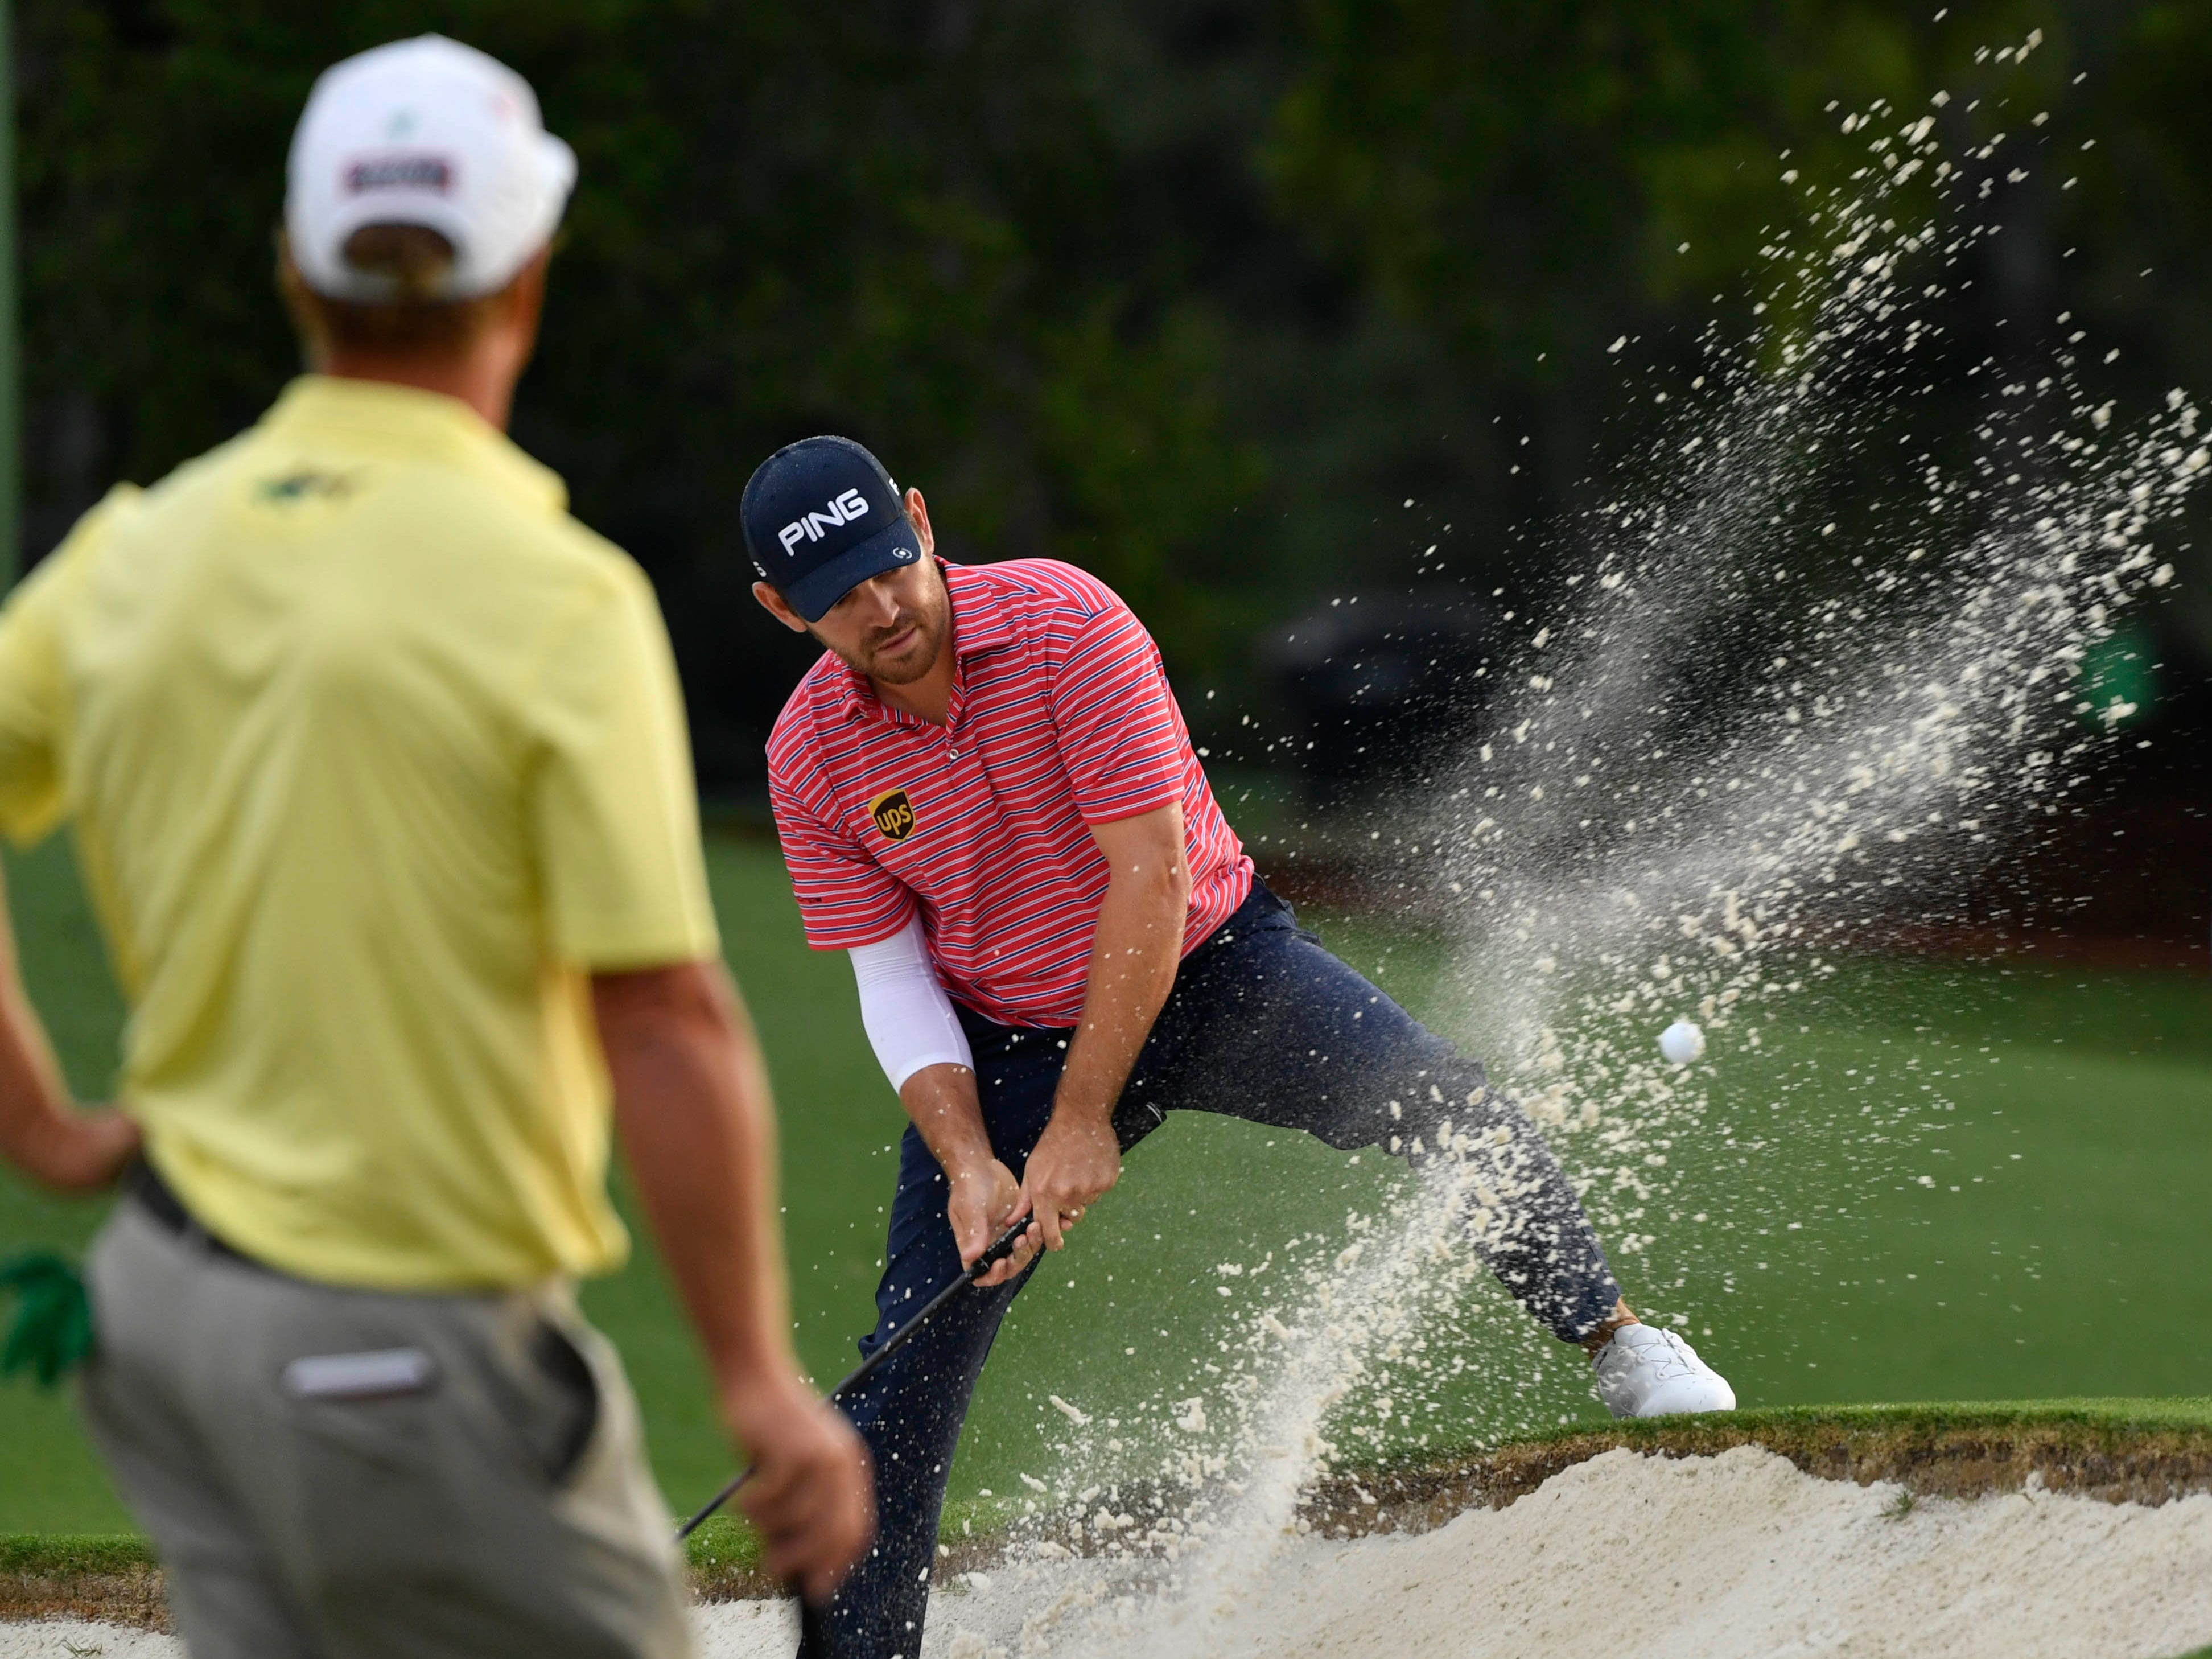 Louis Oosthuizen hits out of a bunker on the 18th hole during the second round.